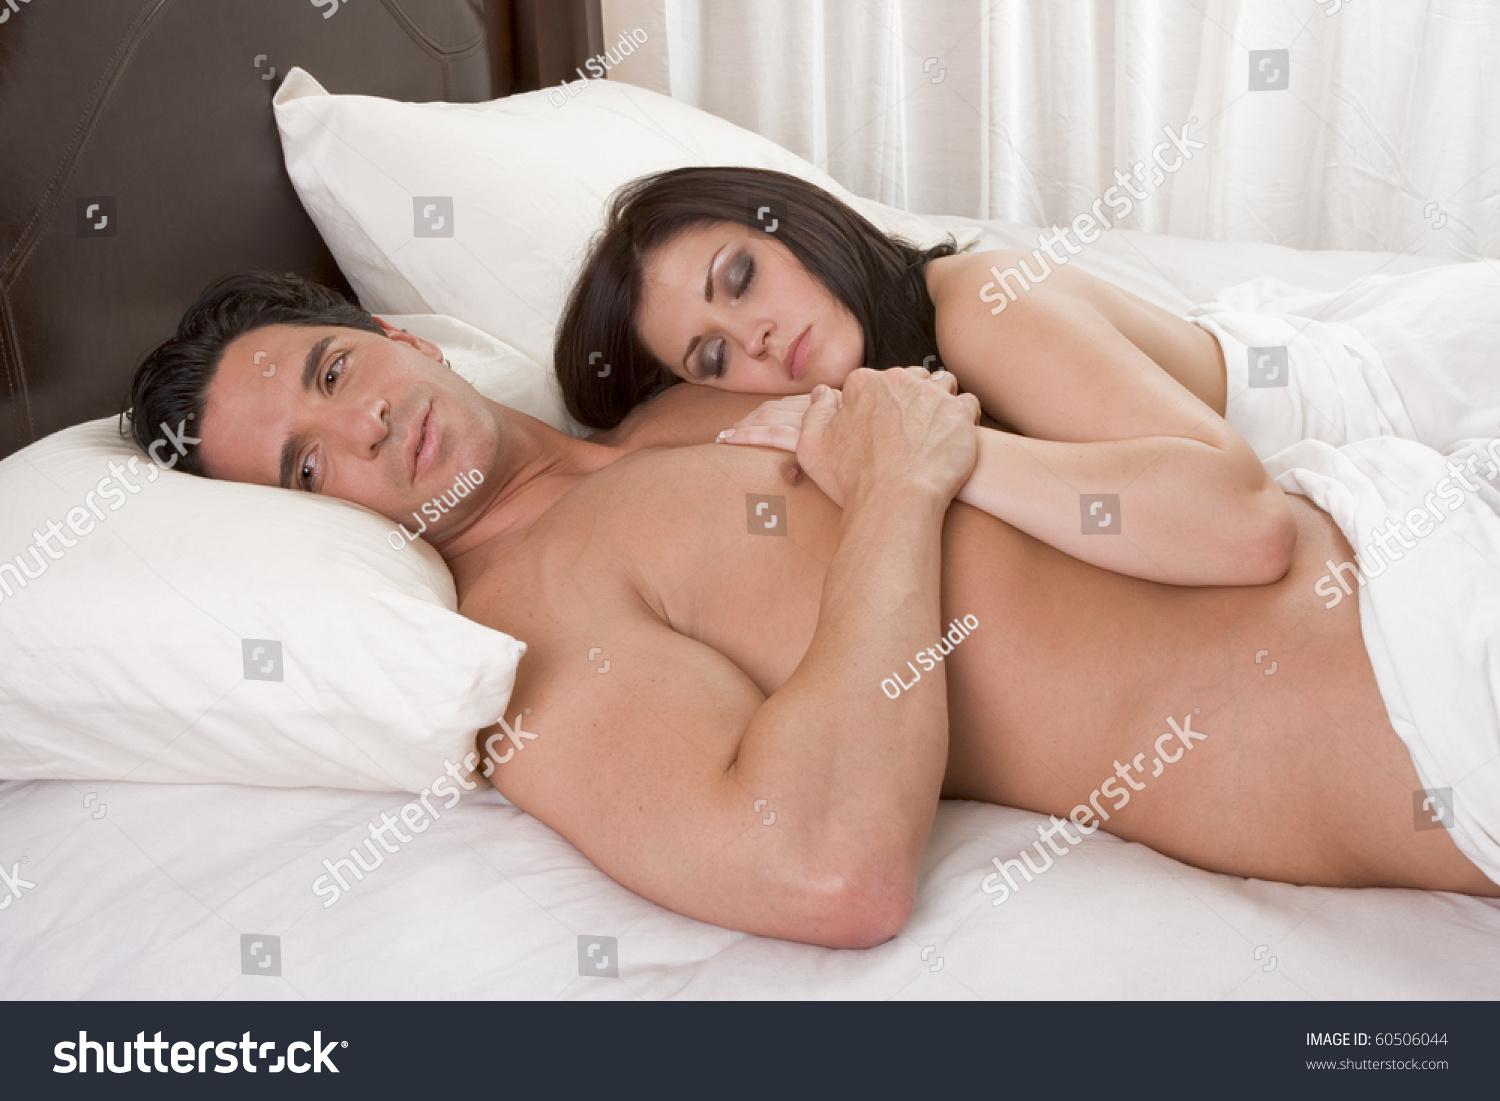 couple sleeping nude